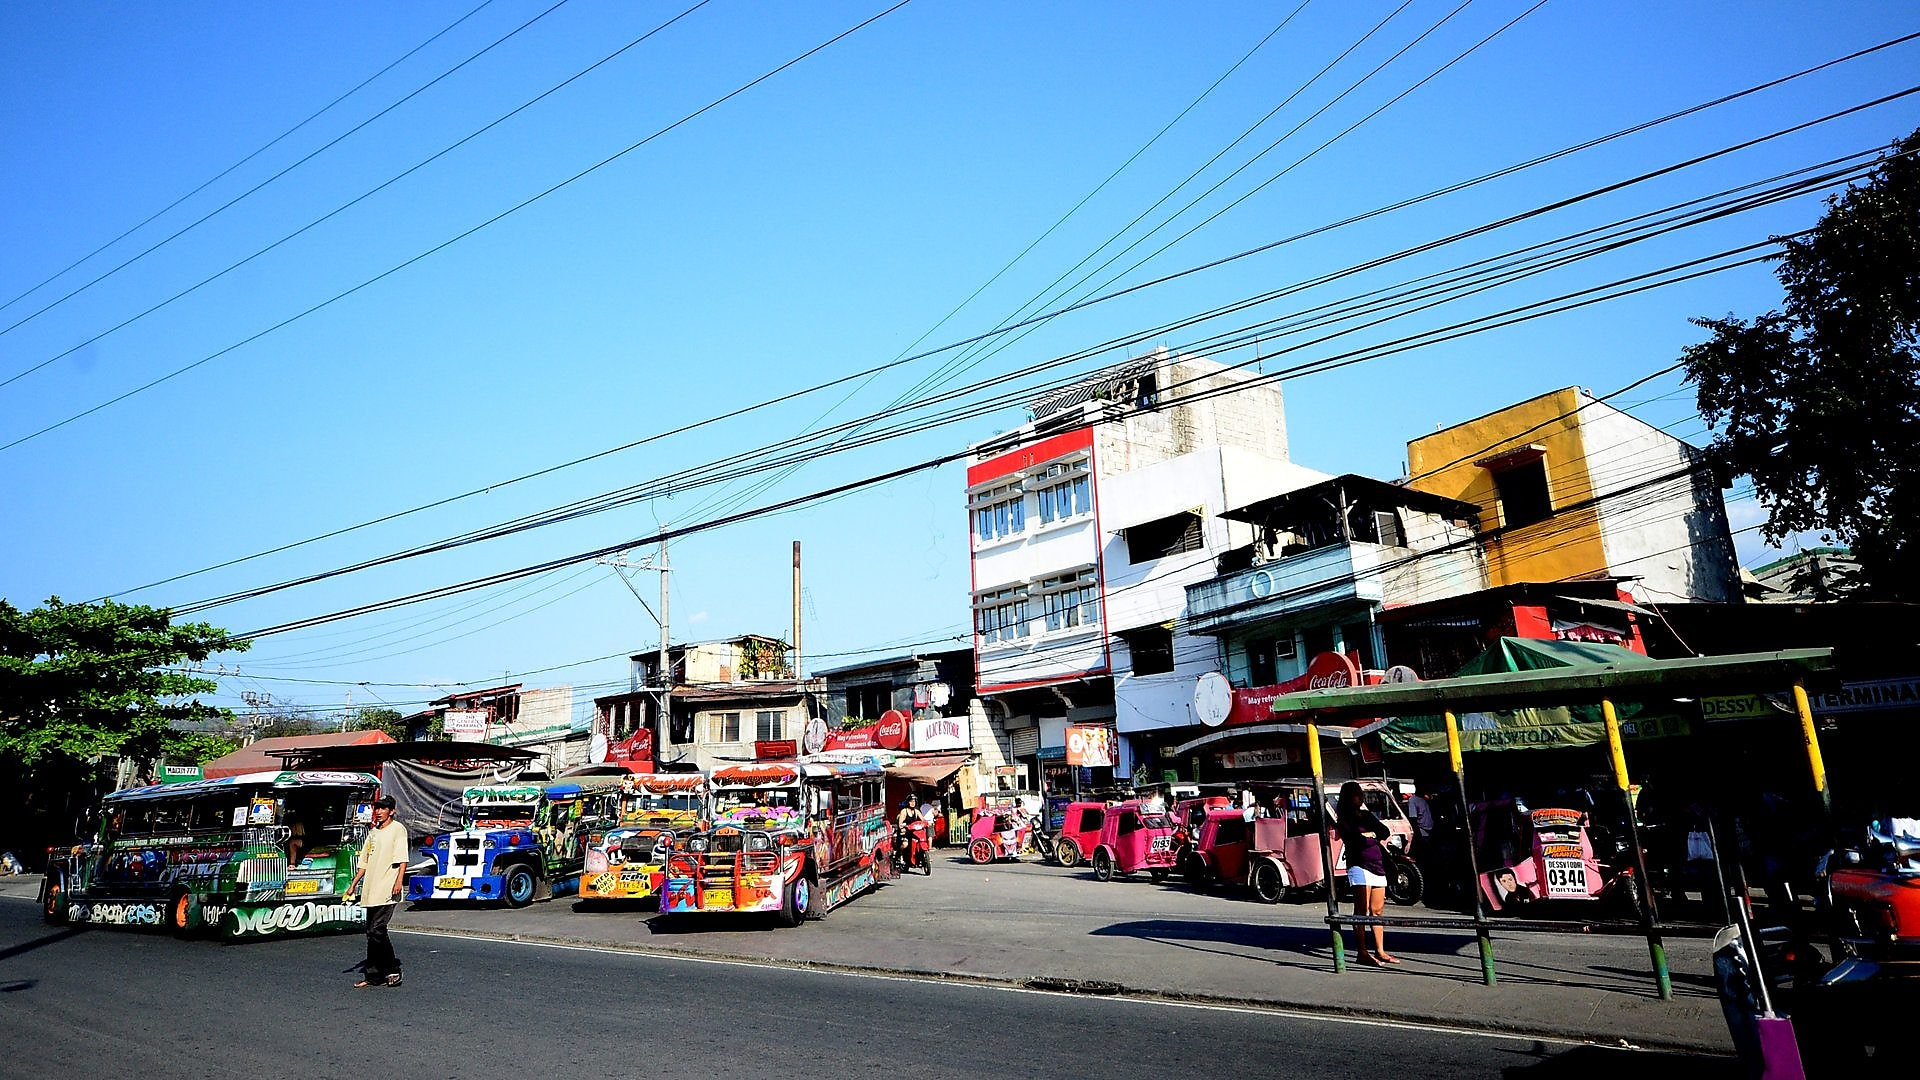 Marikina street scene featuring small local buses known as jeepneys